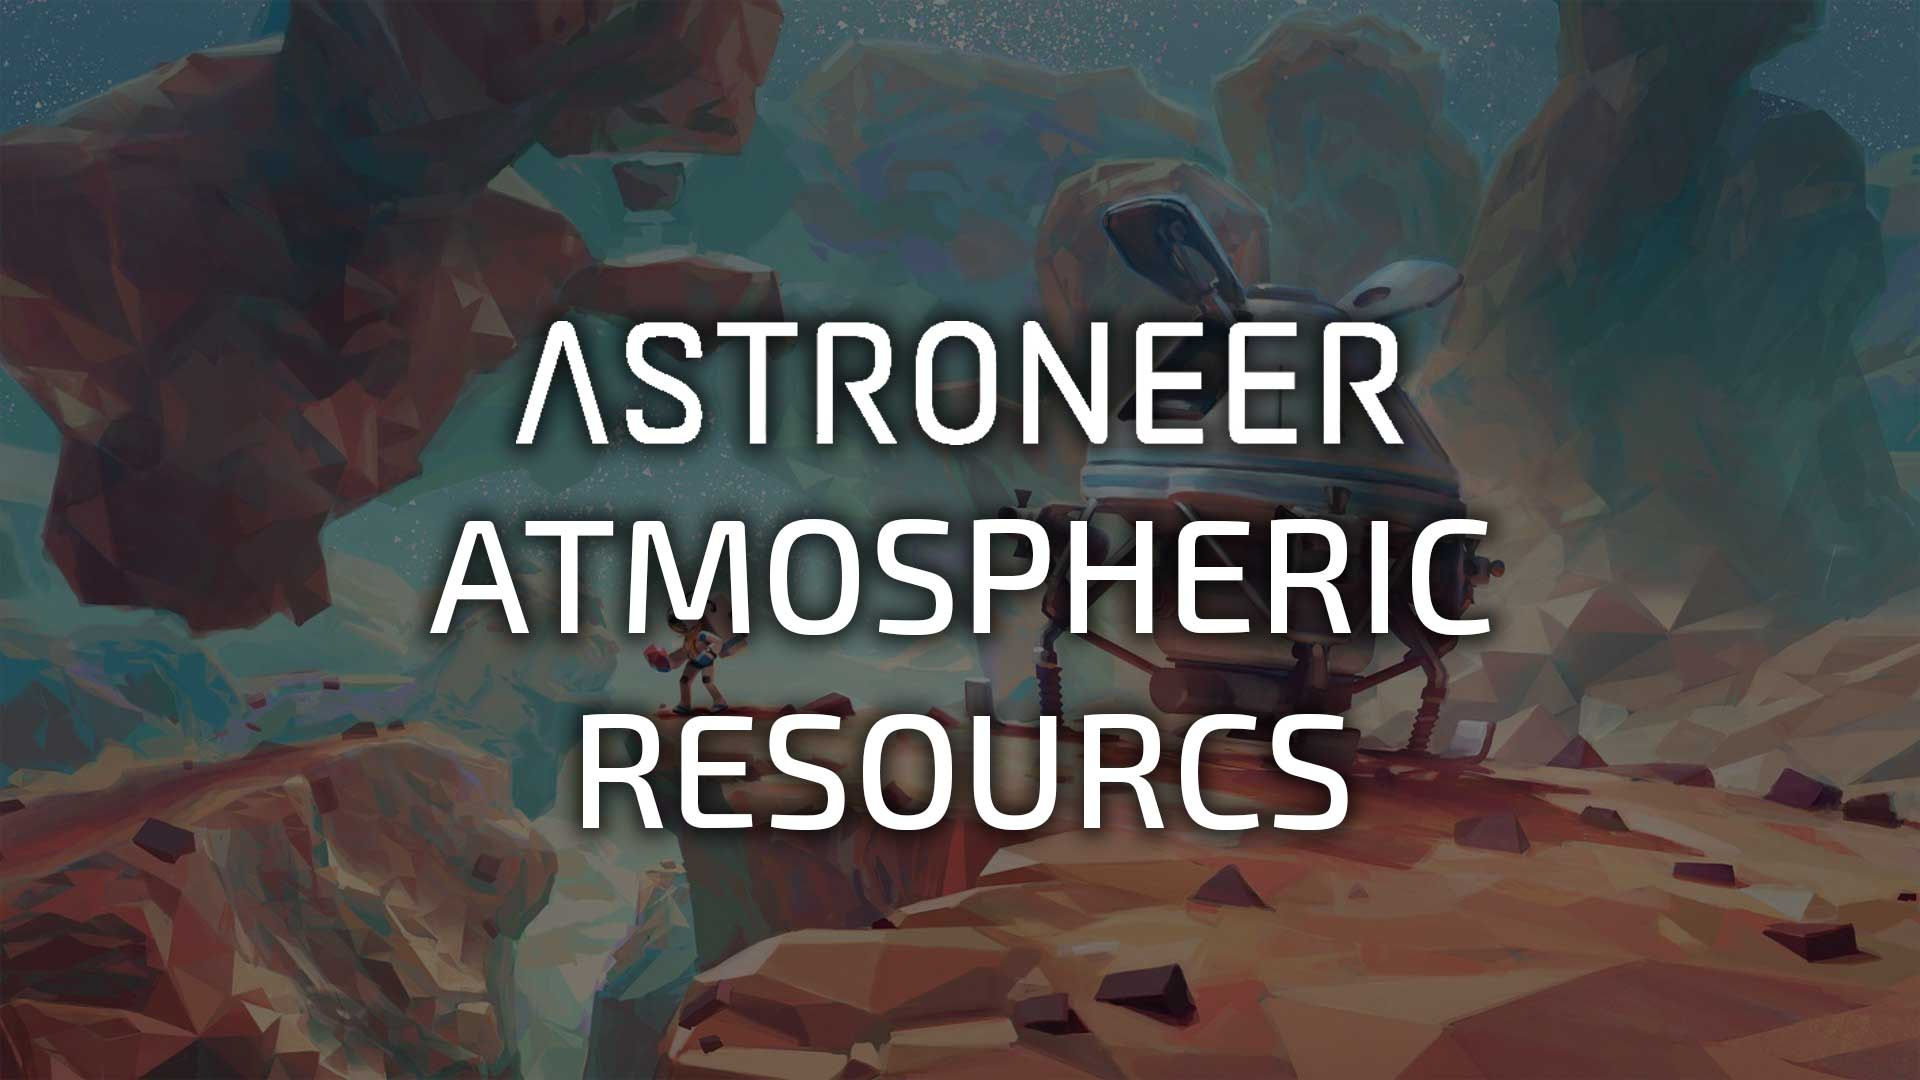 astroneer atmospheric resources